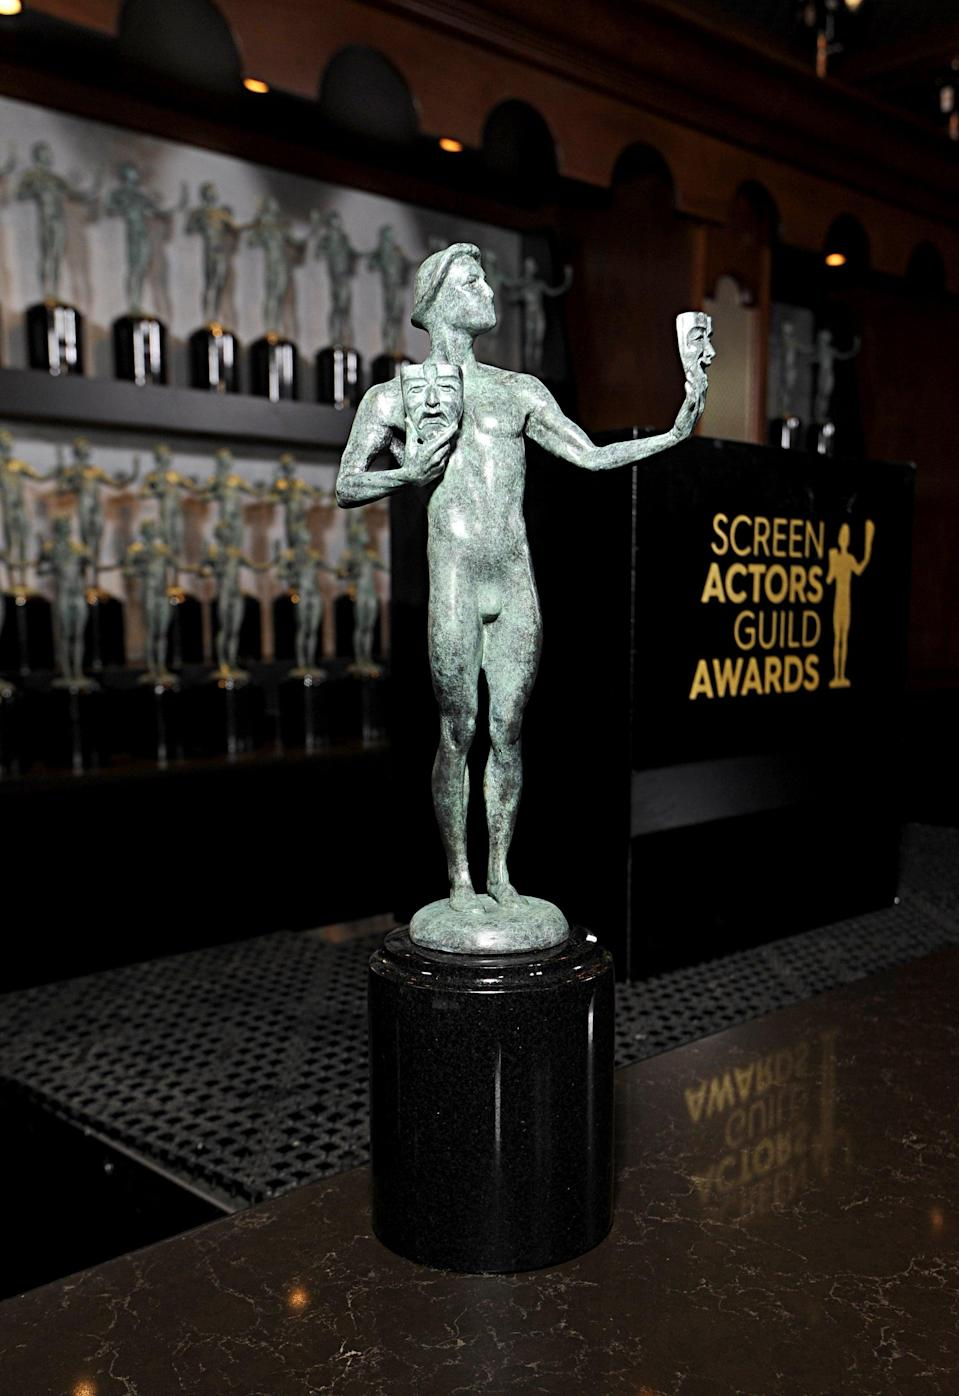 <p>The Screen Actors Guild Awards have been moved back to March 14, 2021 and are still scheduled to happen live as planned. The show is slated to air on TNT.</p>